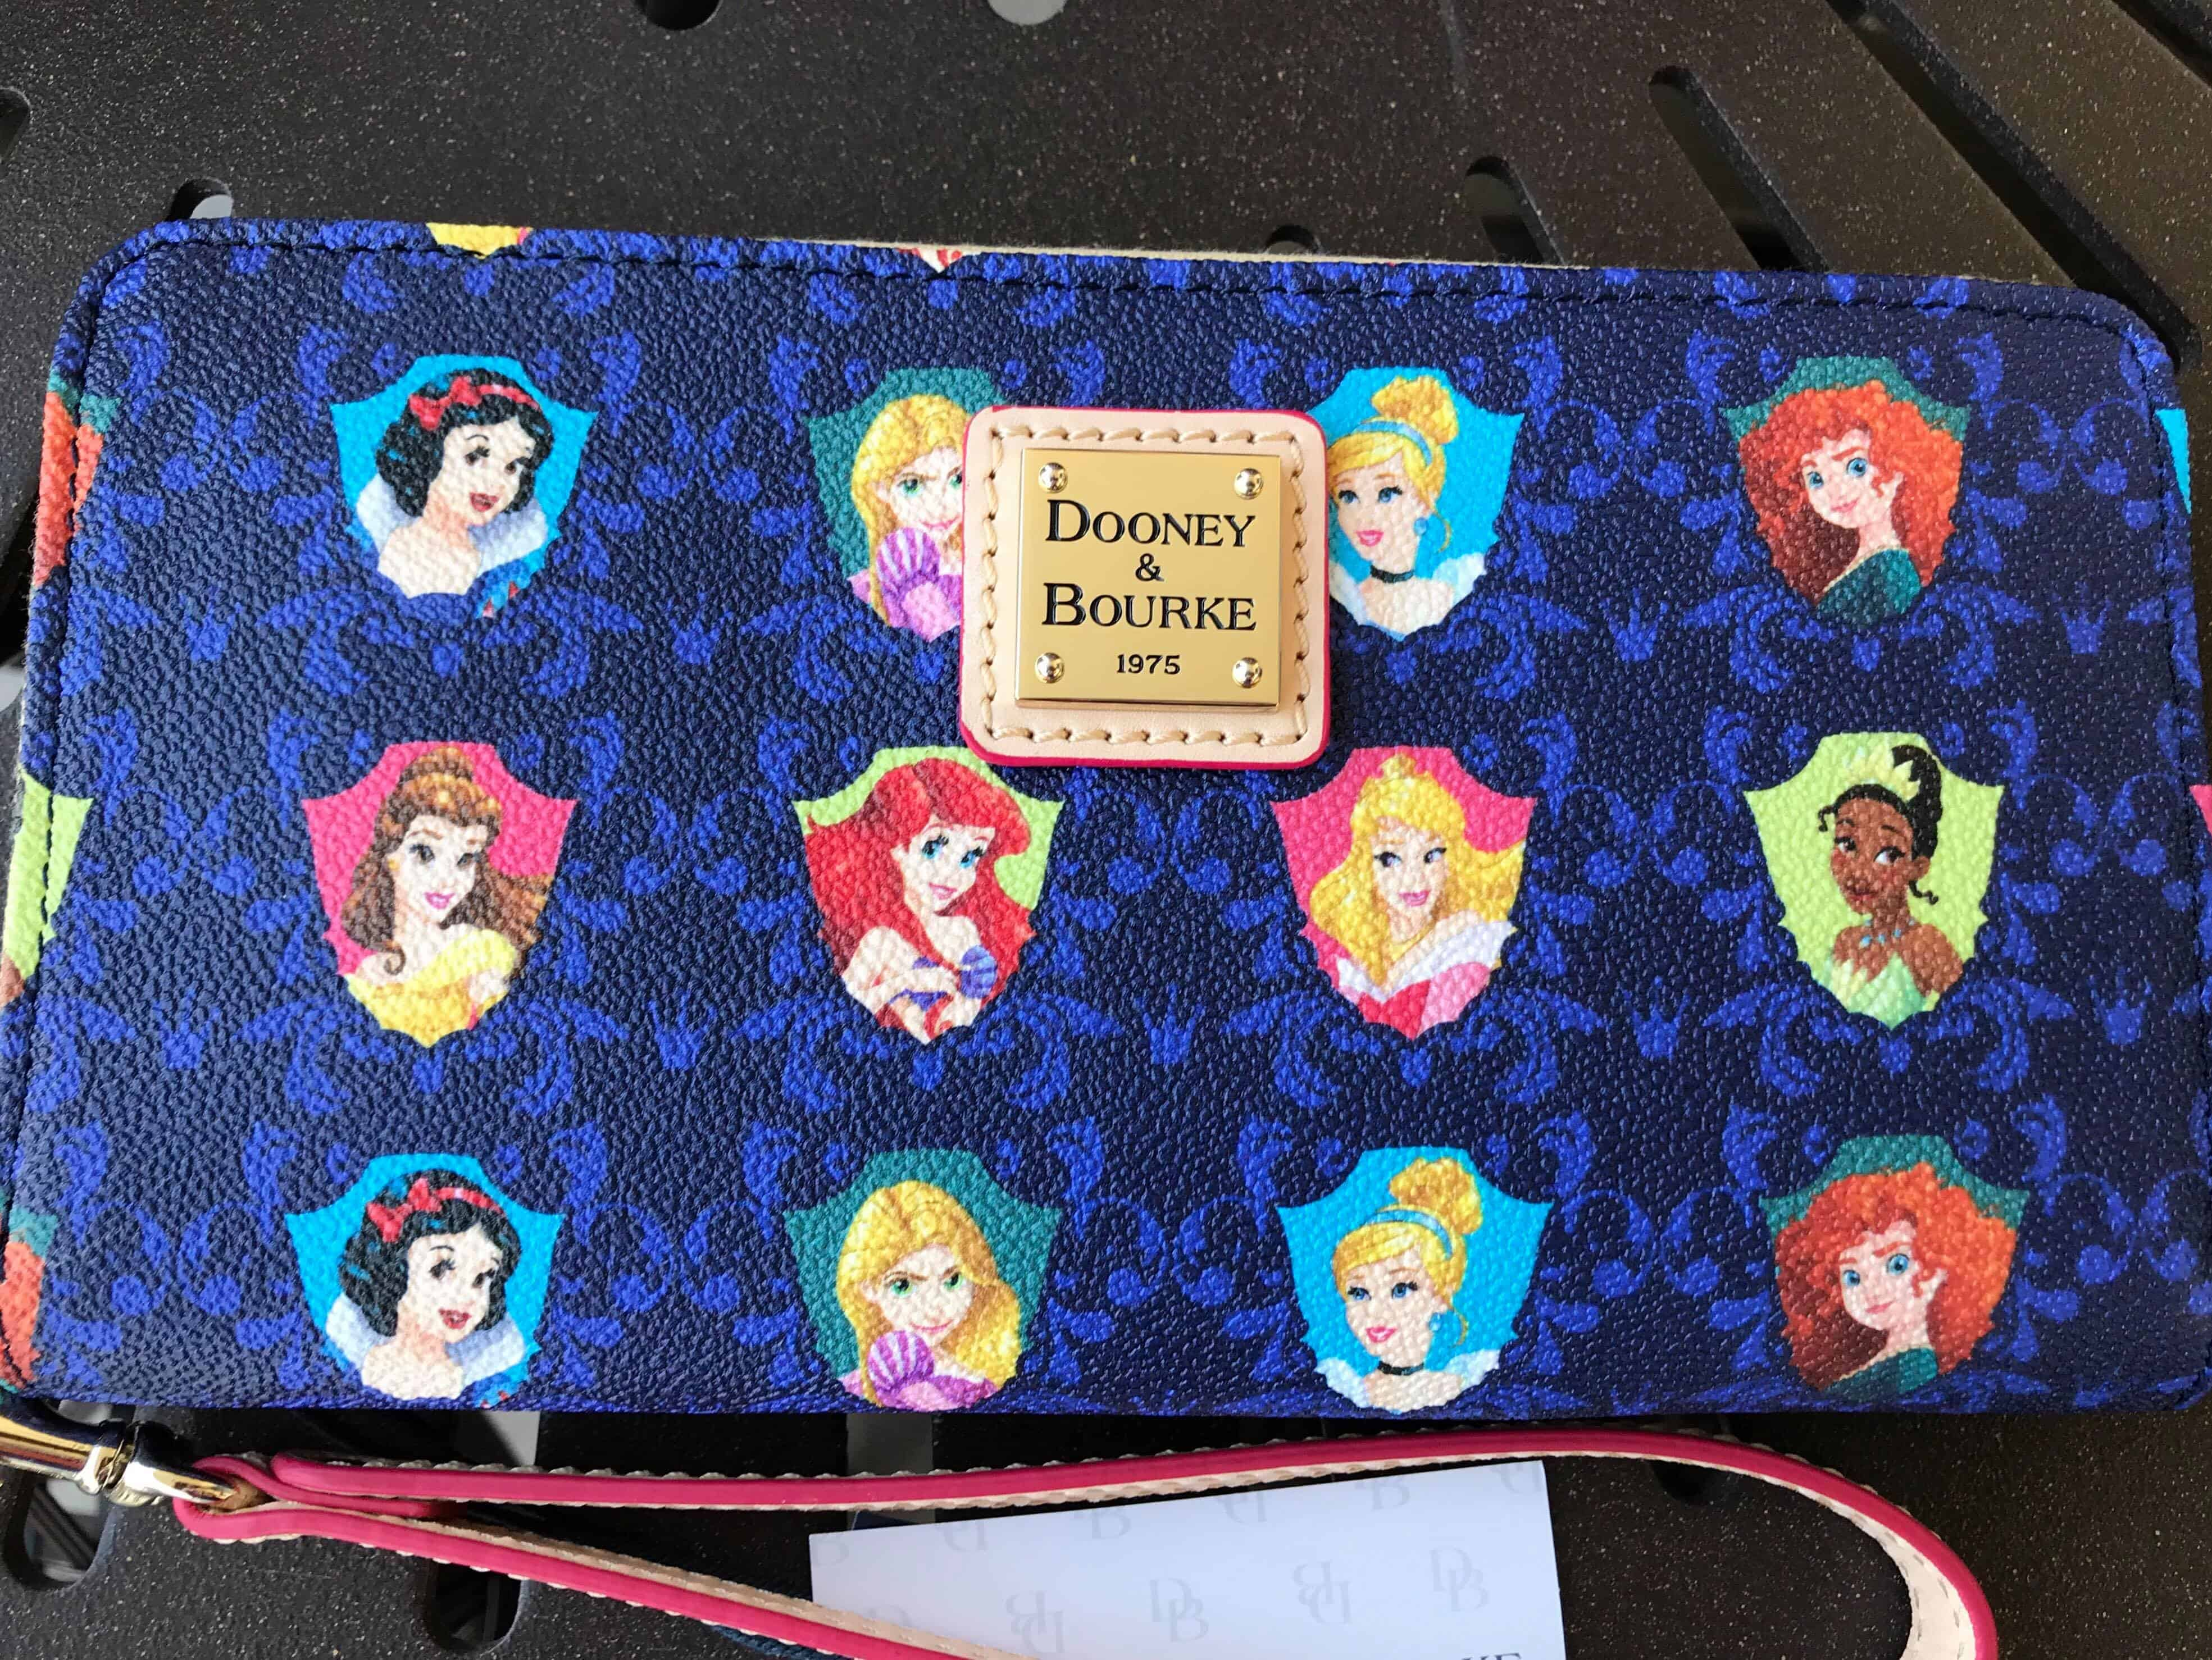 Princess Half Marathon 2018 Wallet